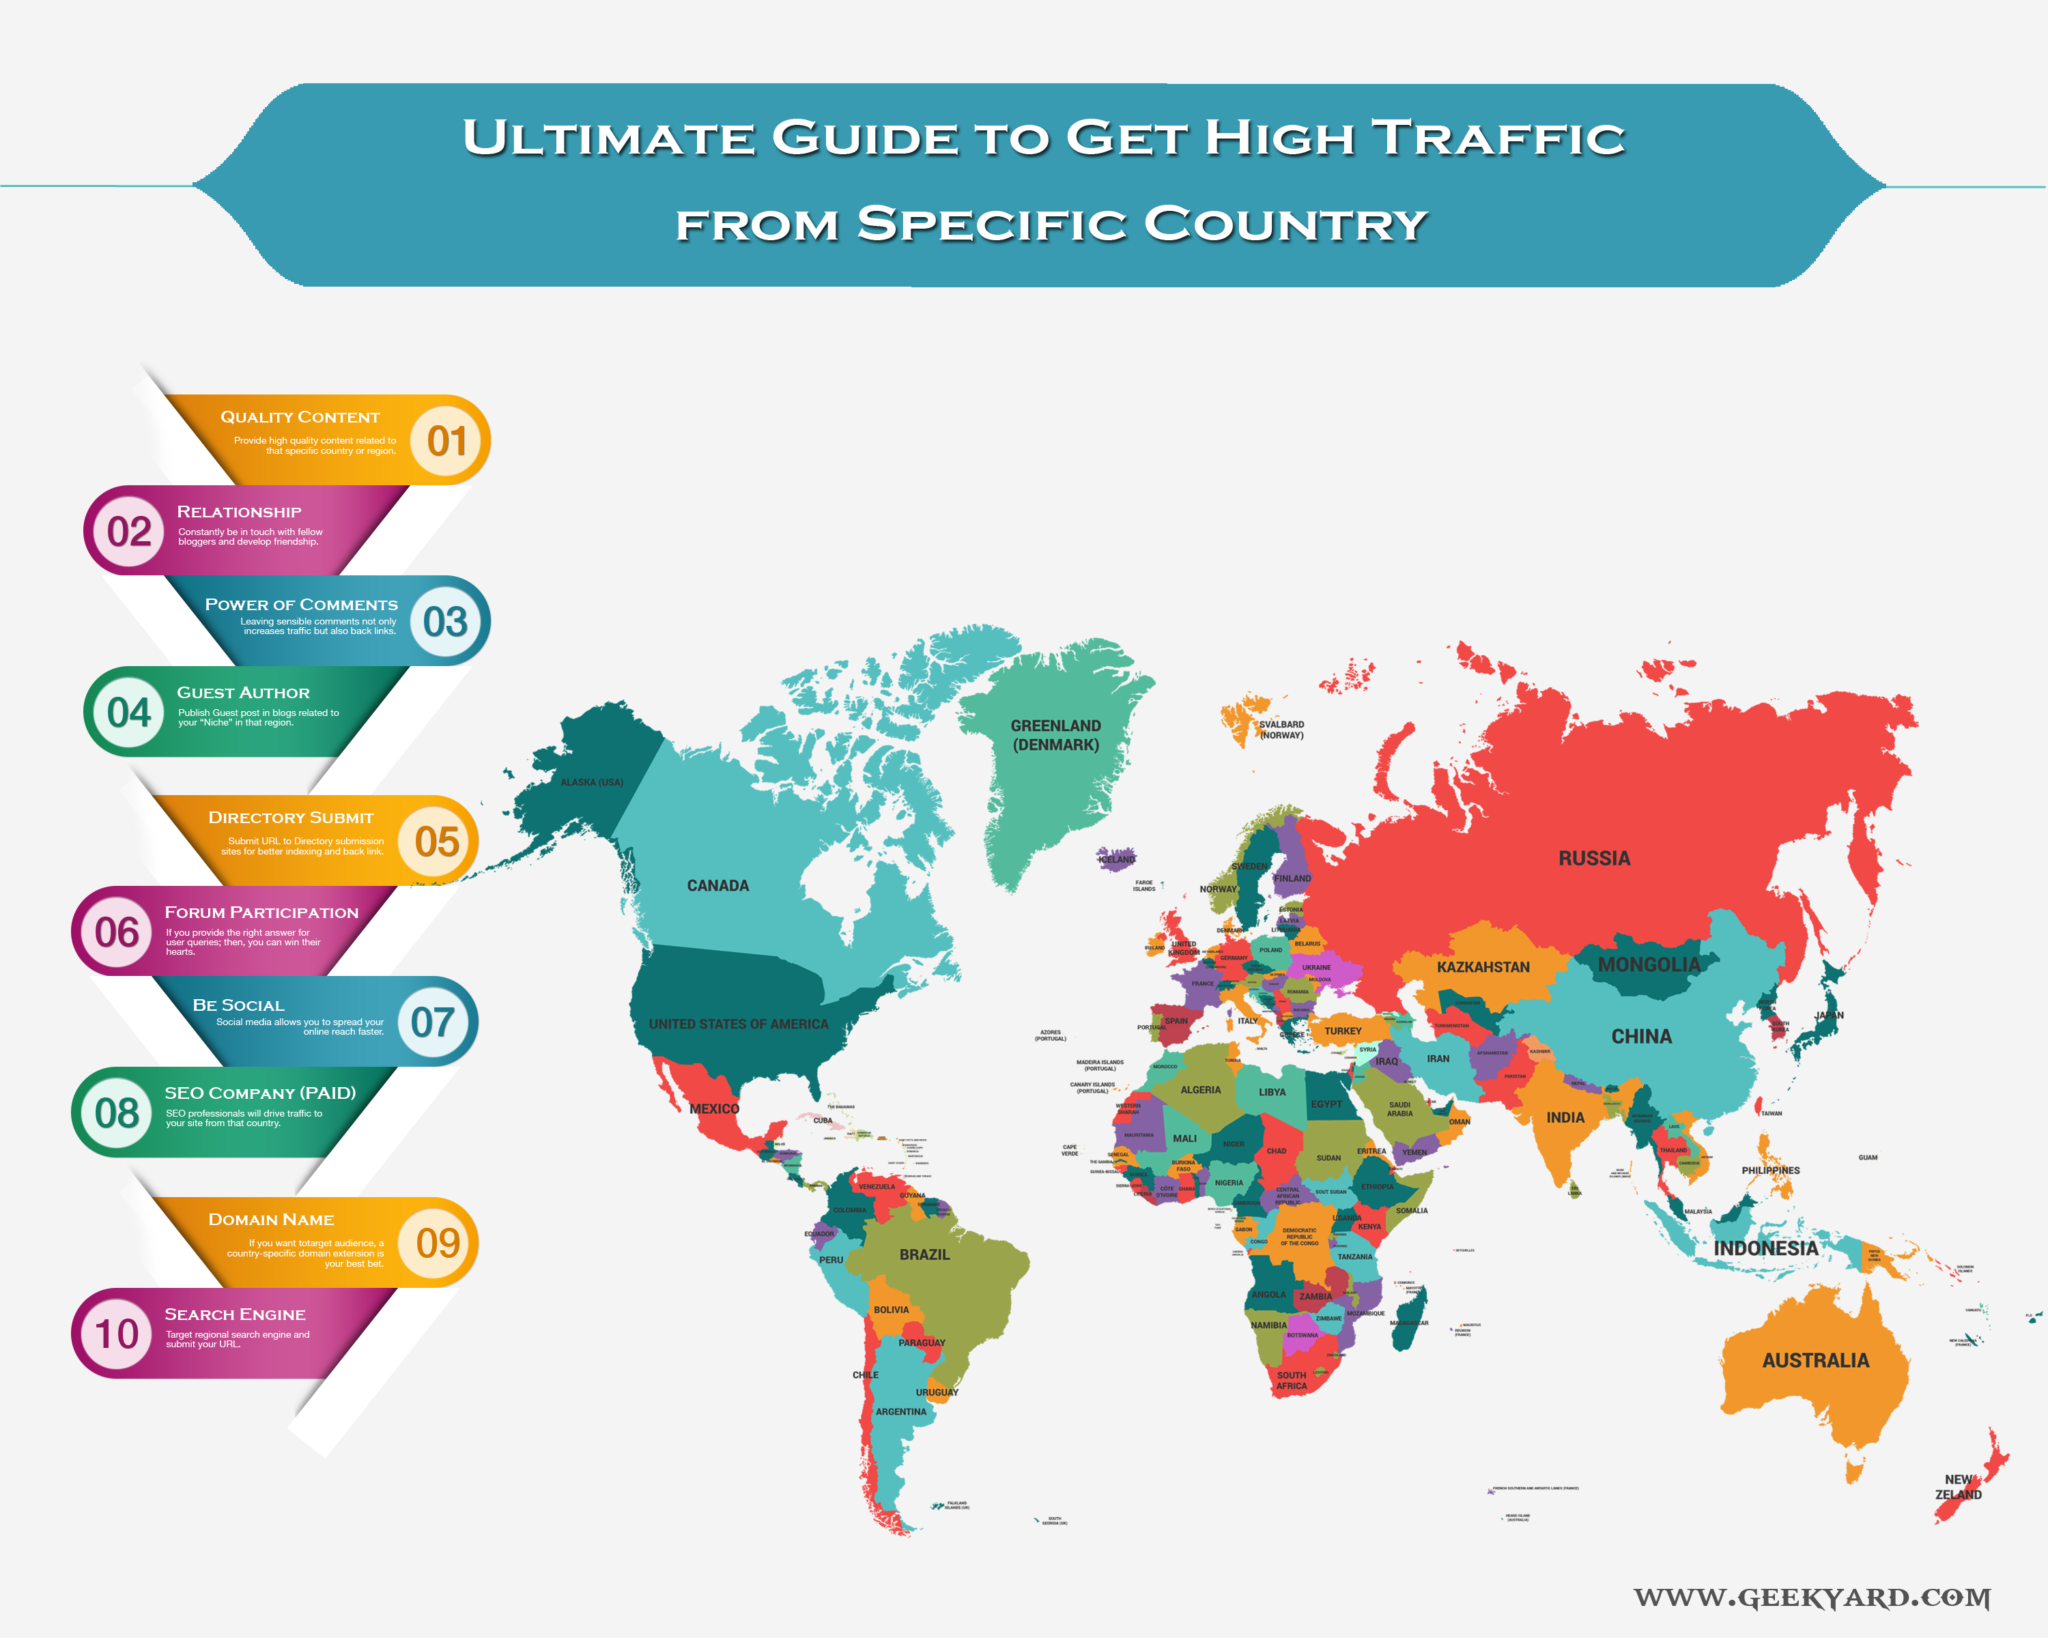 http://www.geekyard.com/wp-content/uploads/2016/11/Infographics-Web-Traffic-From-Specific-Country.png